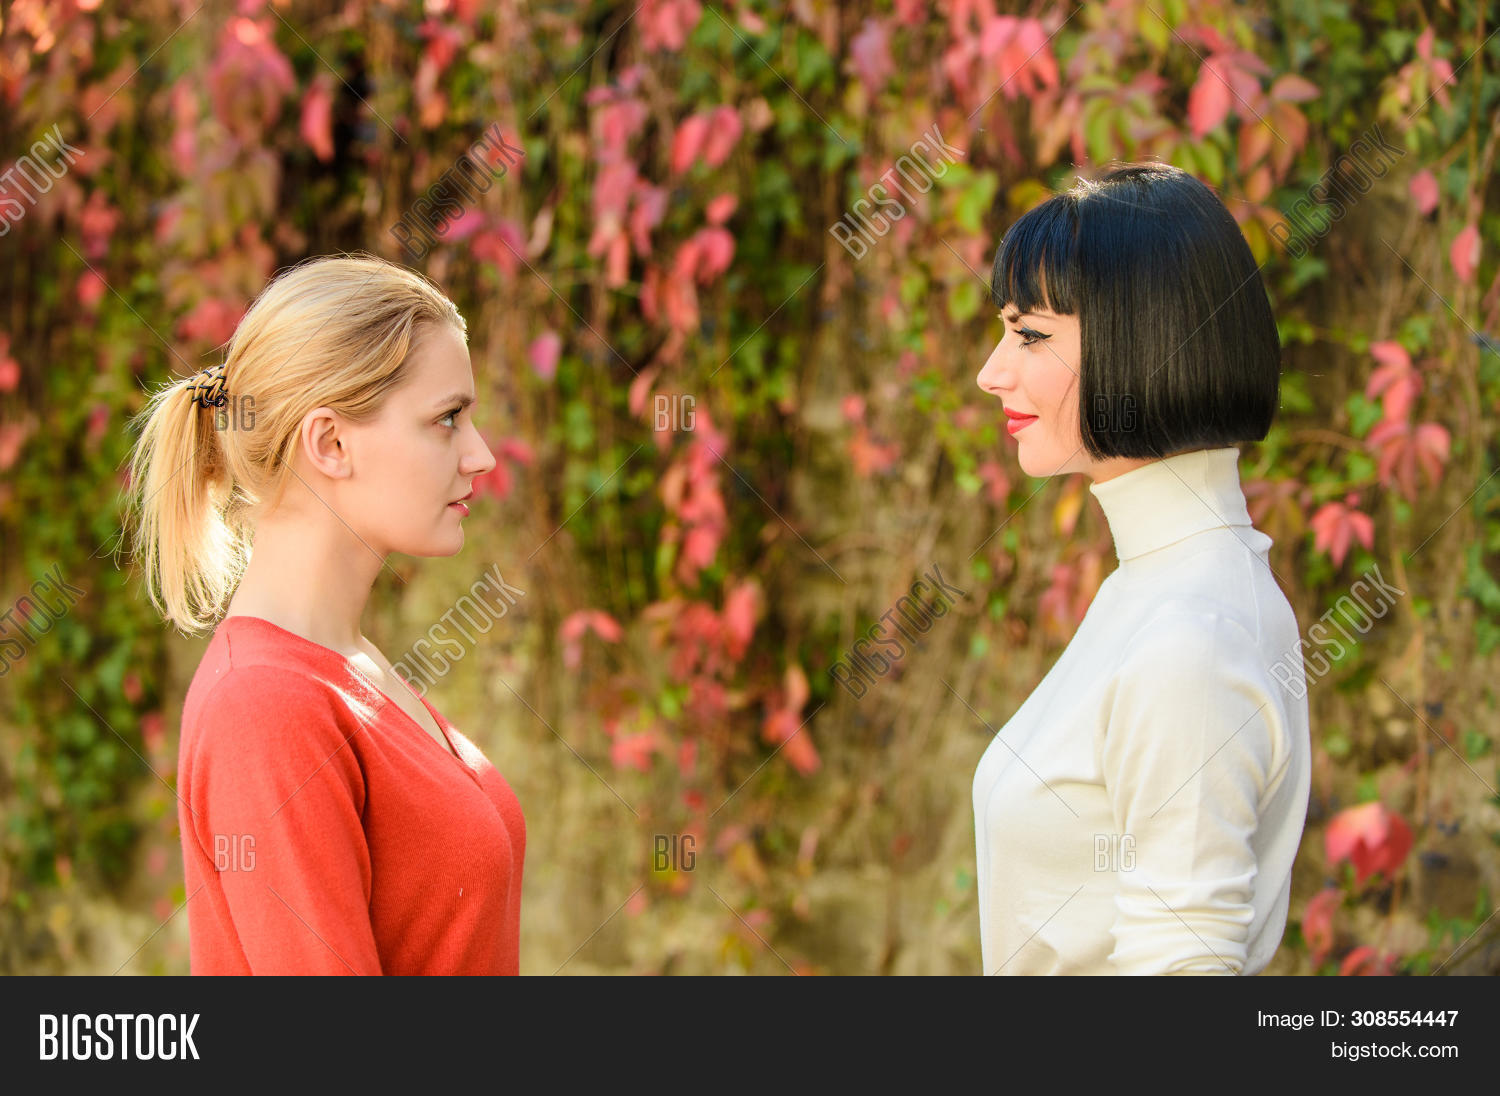 Girls Looking Into Image Photo Free Trial Bigstock